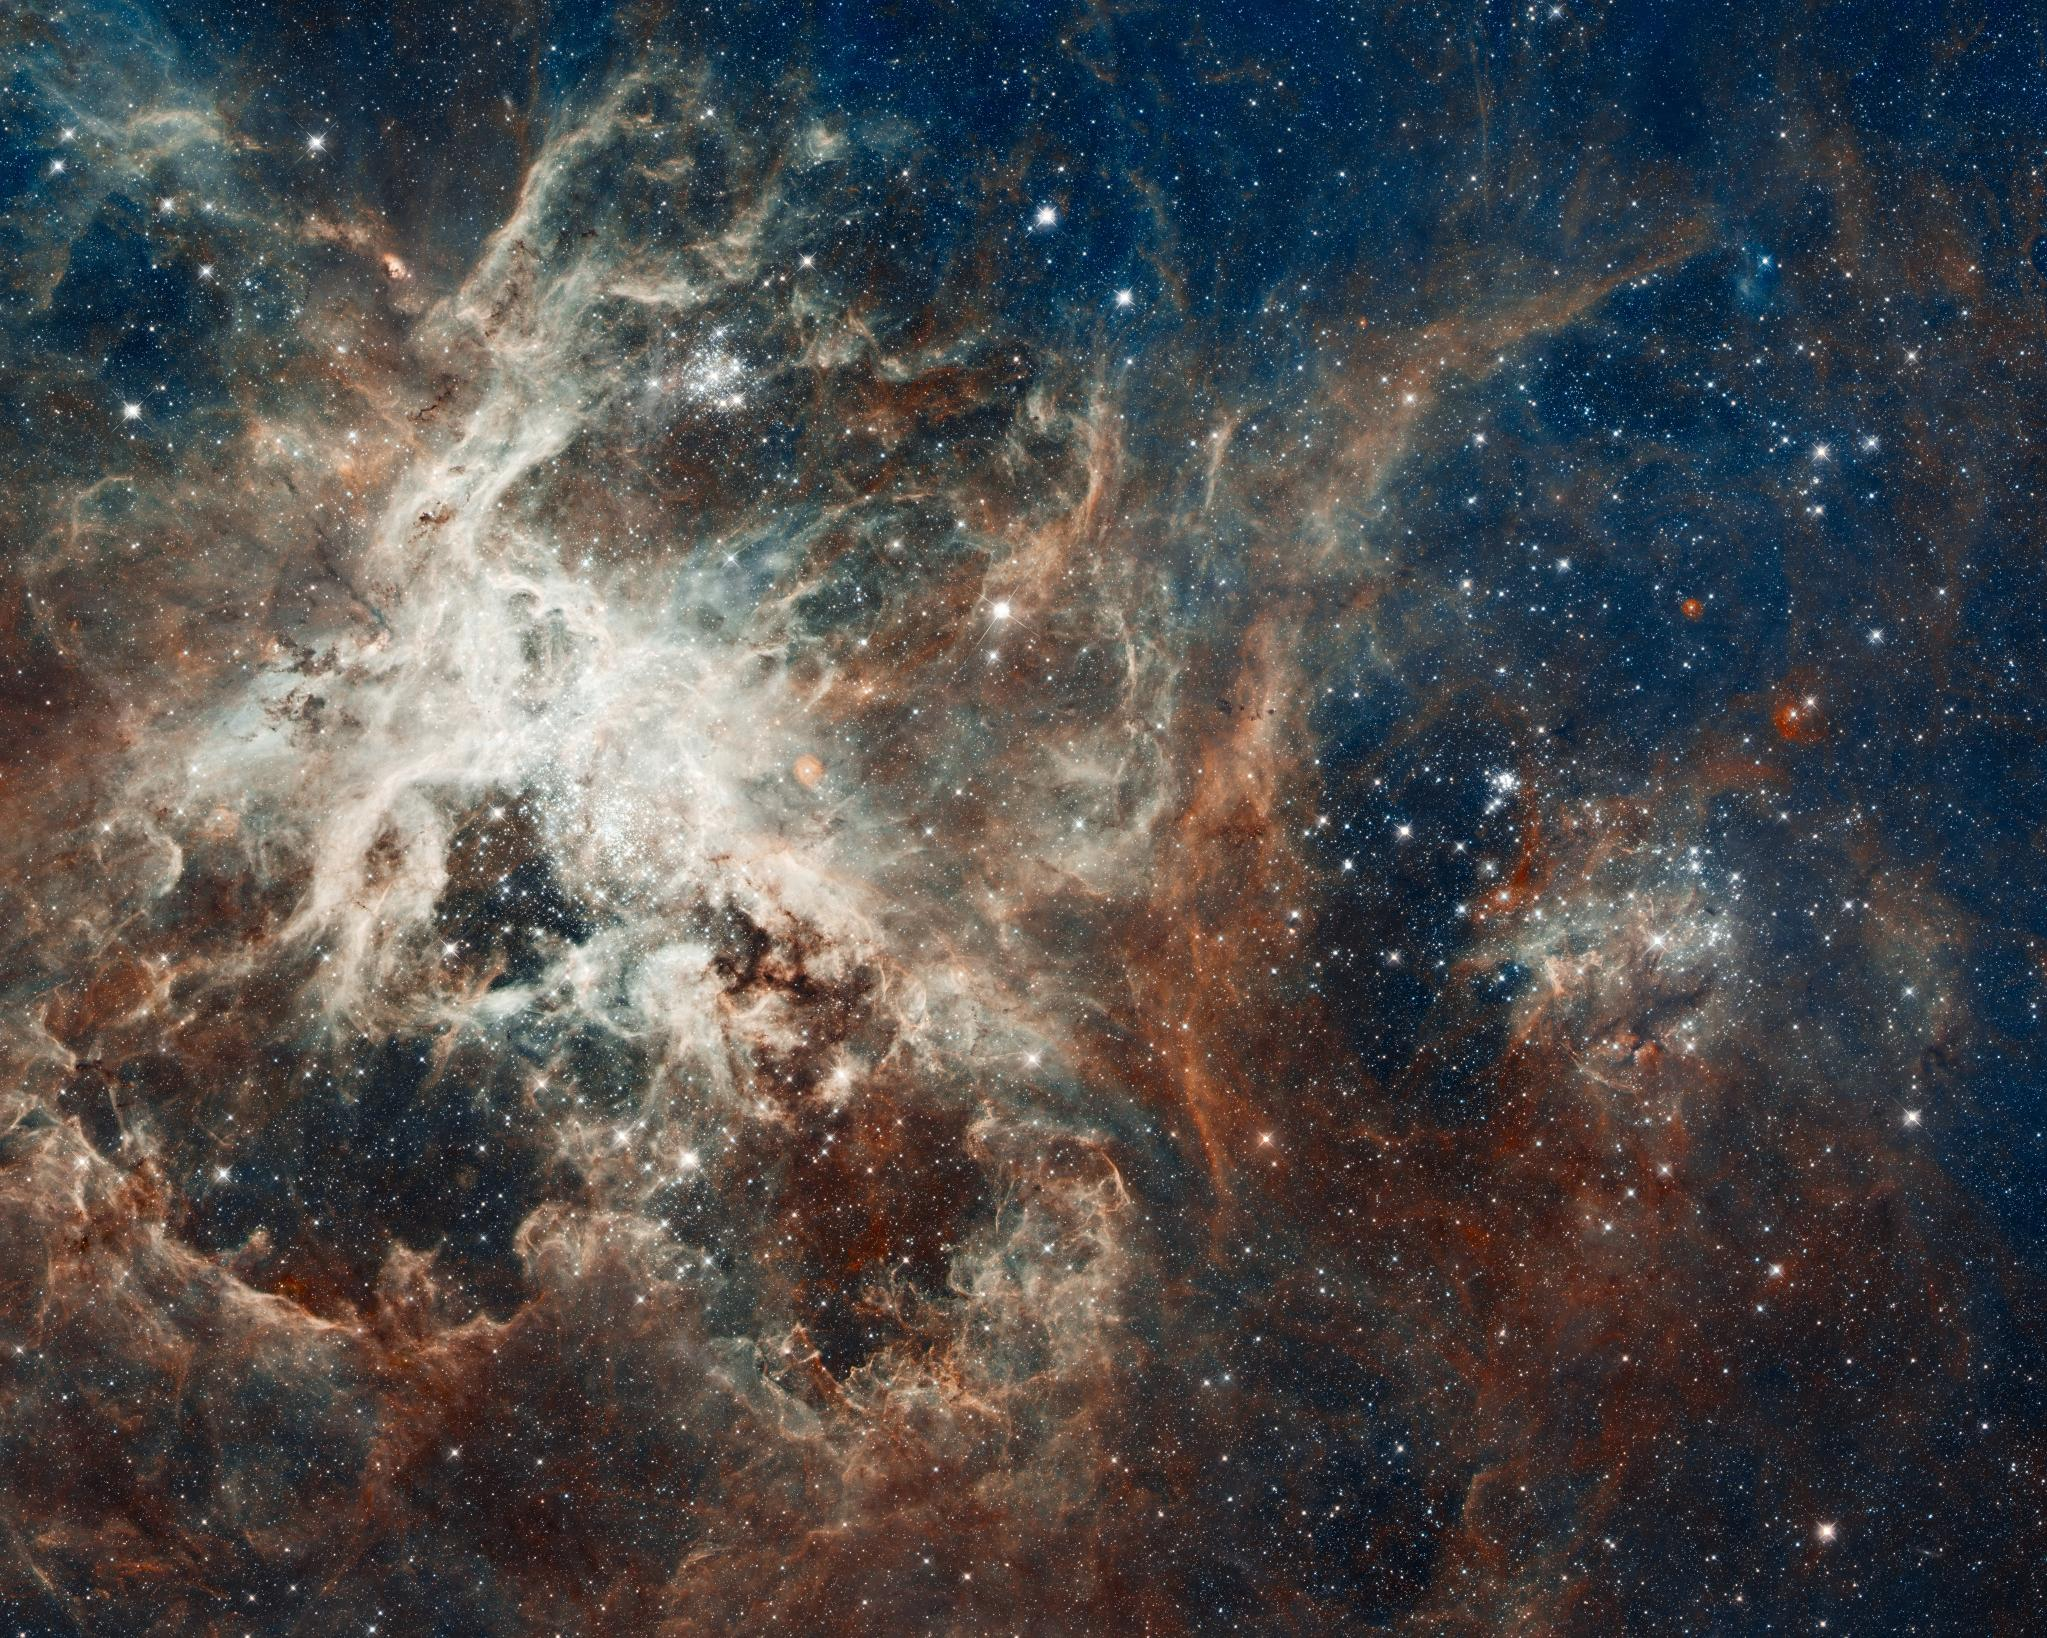 Our knowledge of space has come a long way since Copernicus and Galileo first claimed that our solar system is heliocentric. Continued funding of space research has allowed for images like this one, taken by the Hubble telescope, showing celestial bodies 170,000 light-years away from Earth.   NASA/Flickr  (CC BY 2.0)